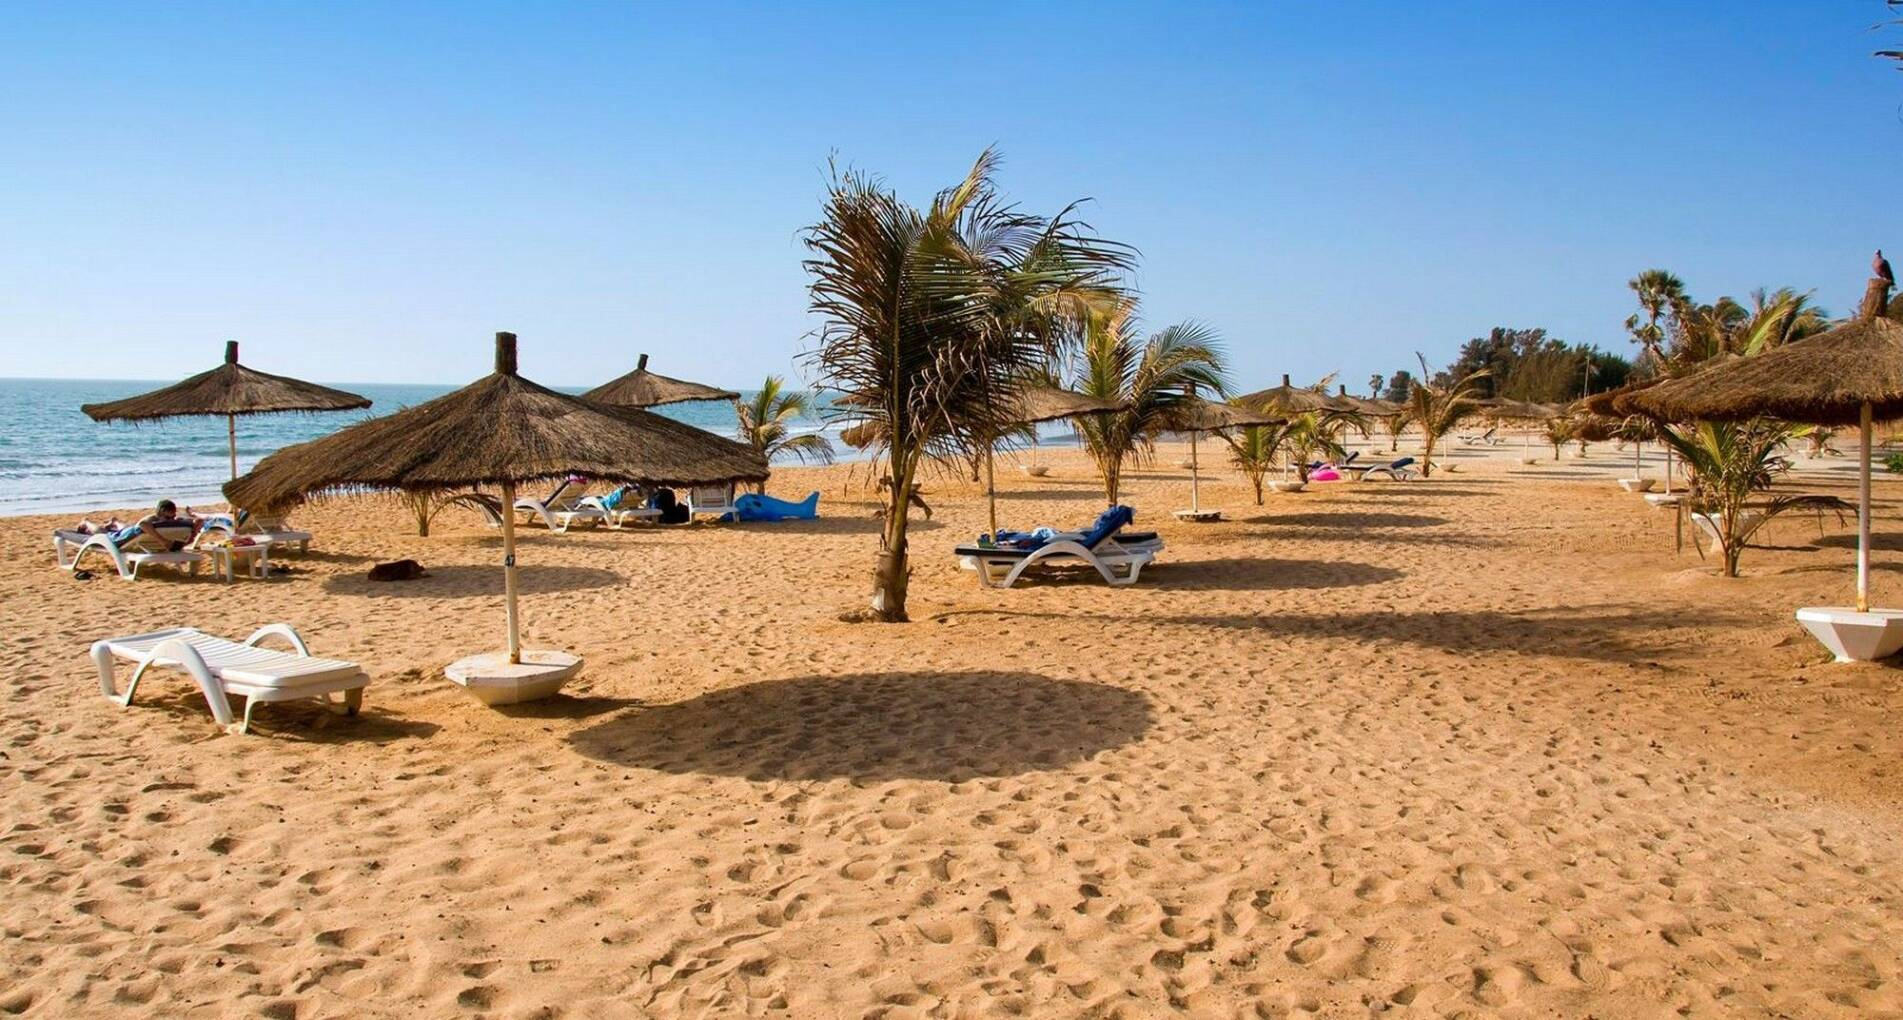 Winterzon Gambia: The Smiling Coast - Gambia - 1